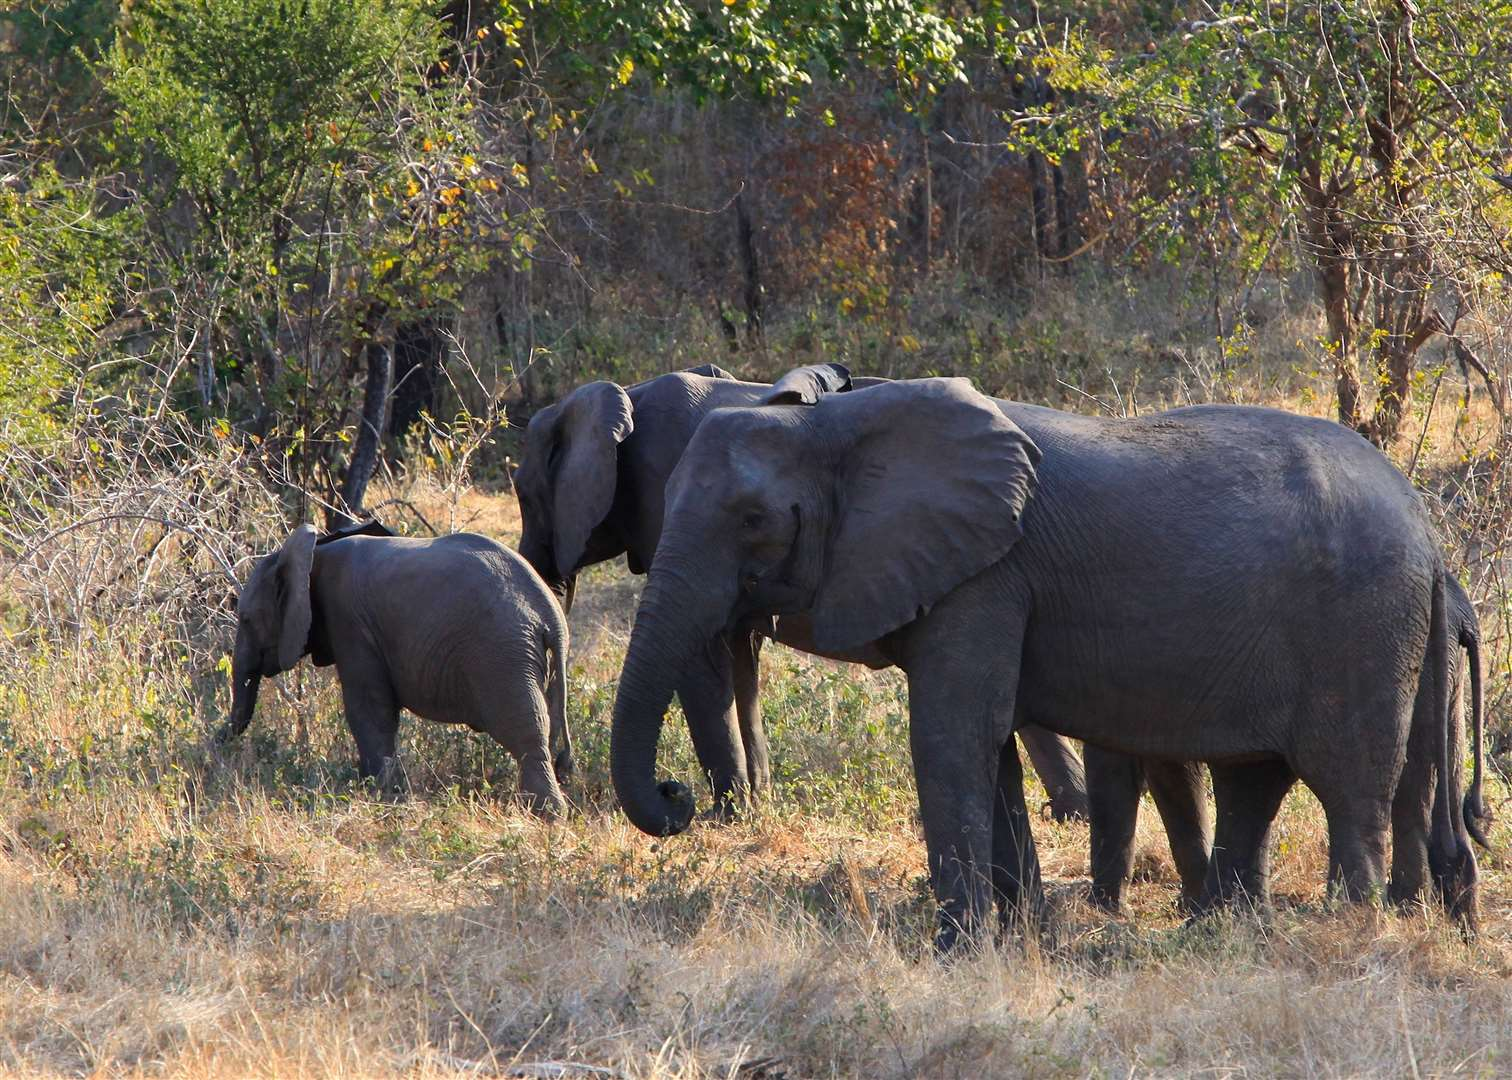 Elephants like big open spaces to roam in - like these in Chuilexi Conservancy at the Niassa National Reserve, where FFI has an ongoing project. Picture: Wim Ebersohn/FFI